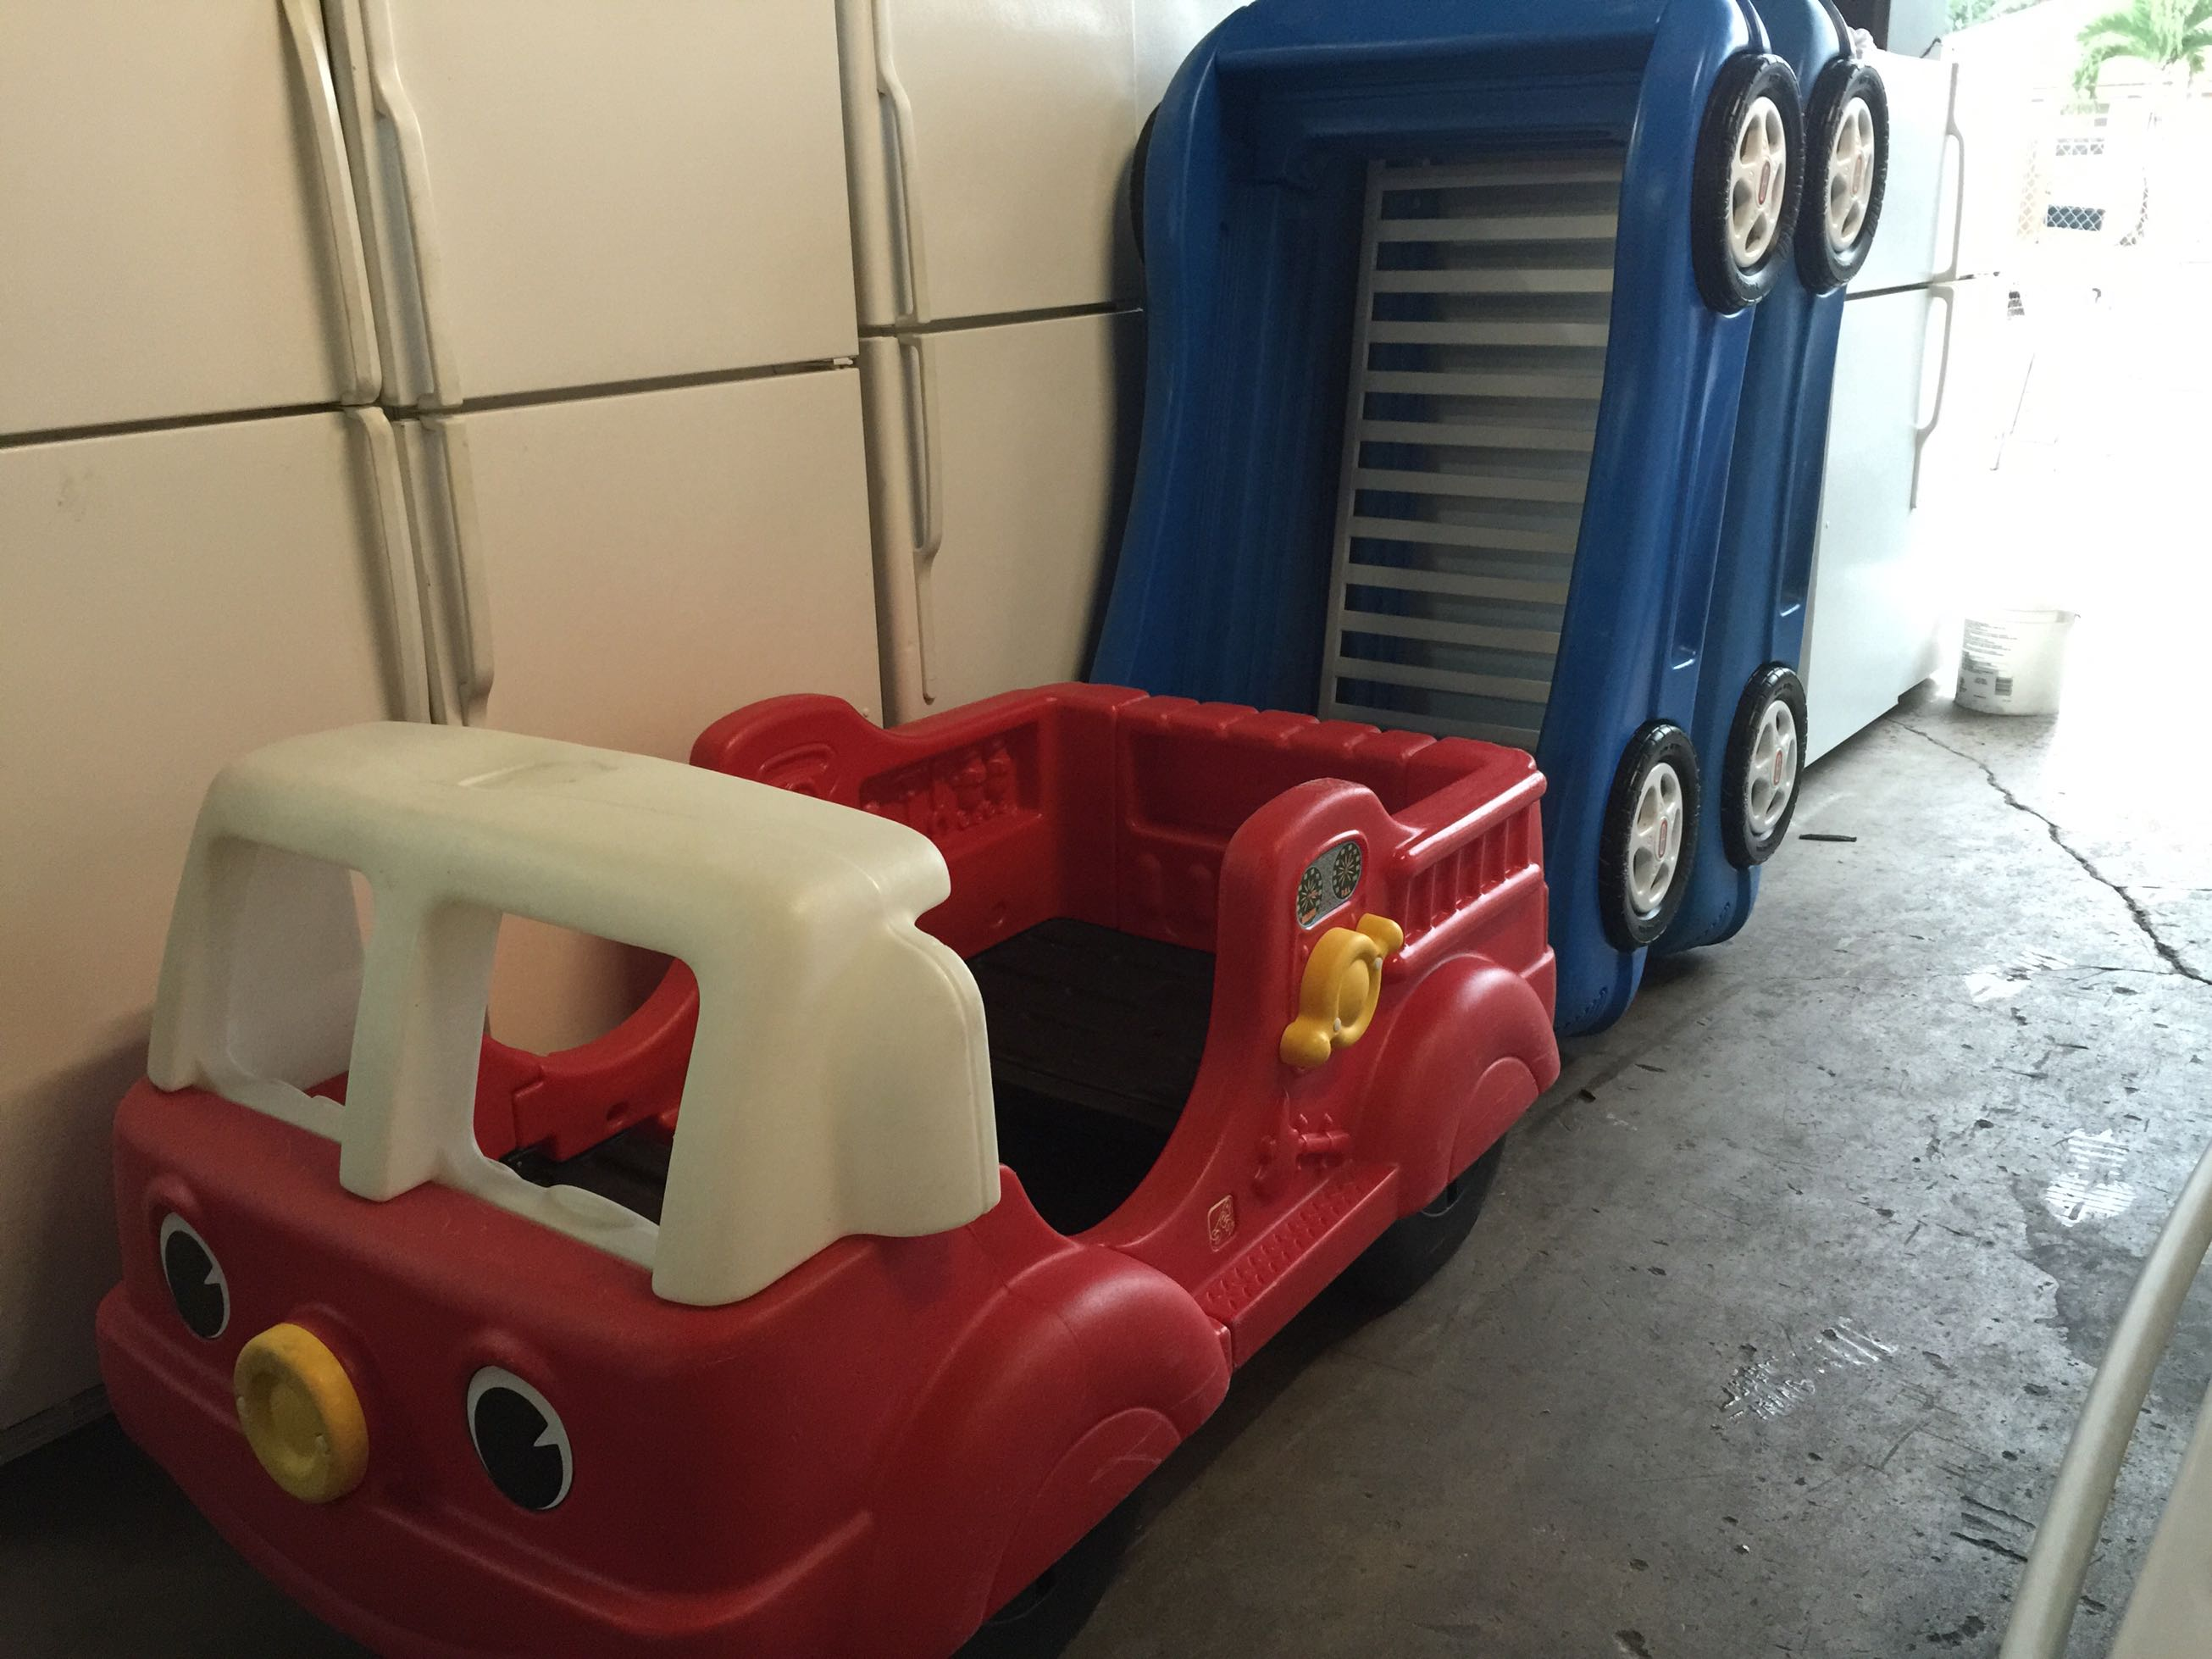 Little Tikes Blue Car Bed: Fire Truck Toddler Bed $79precio Firme Also Blue Race Car